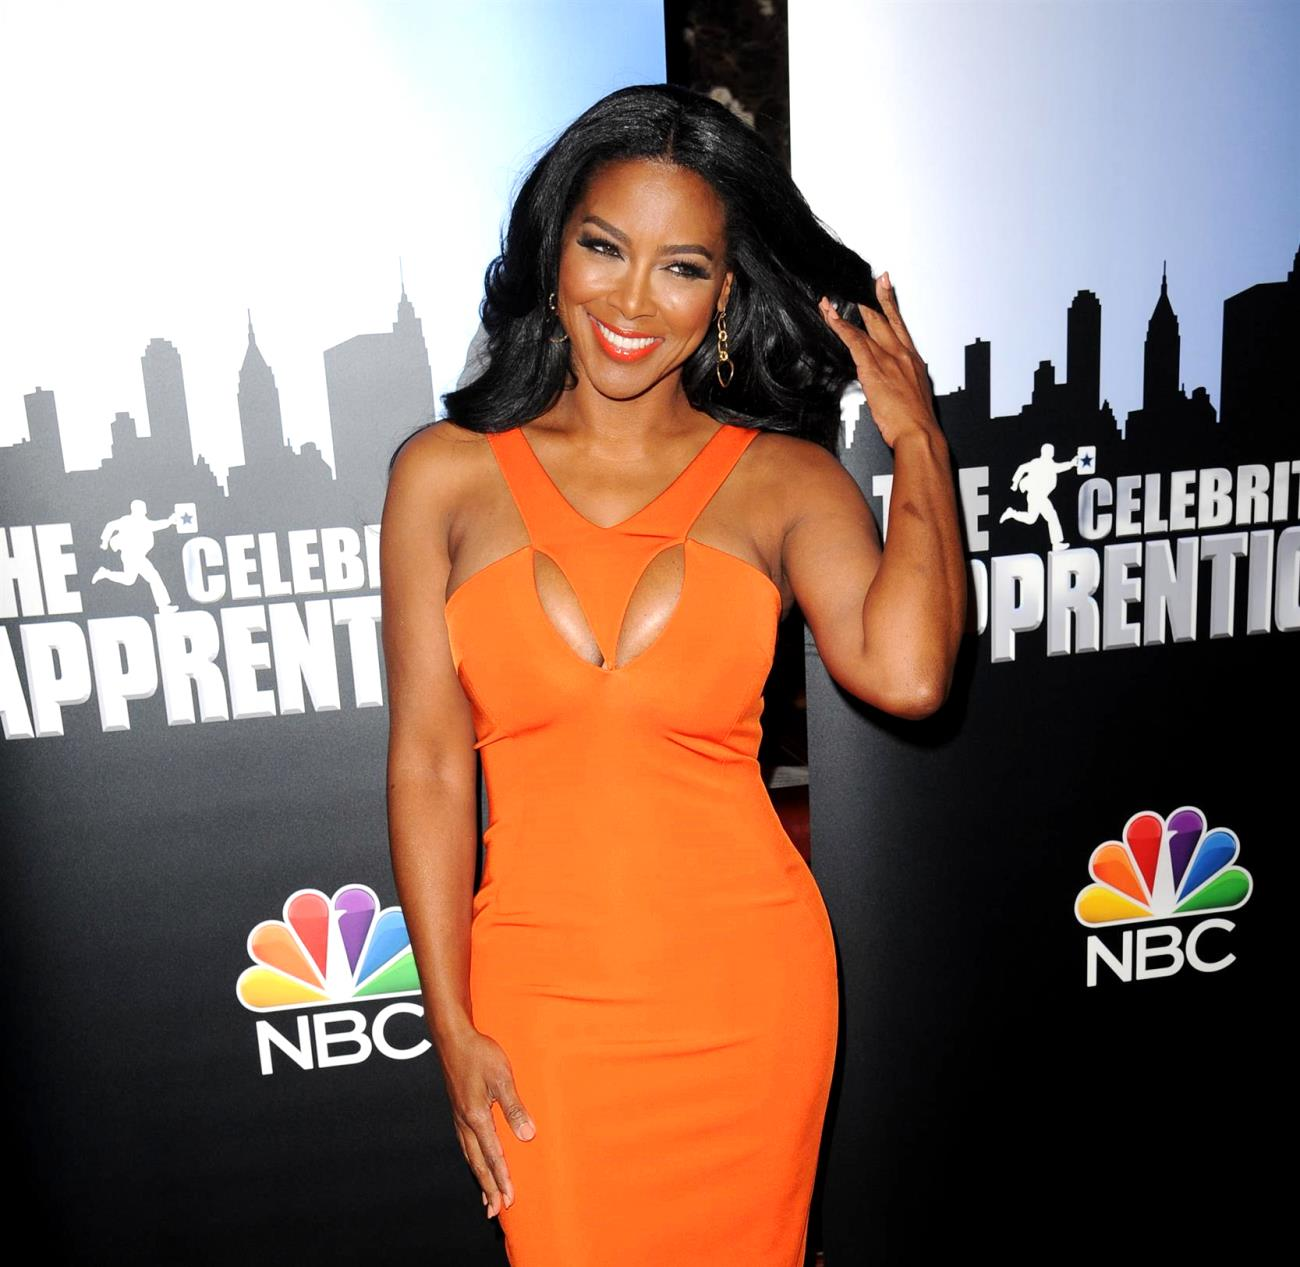 kenya-moore-tells-fans-to-join-her-in-the-quest-of-getting-back-in-shape-her-jaw-dropping-photo-has-people-praising-her-looks